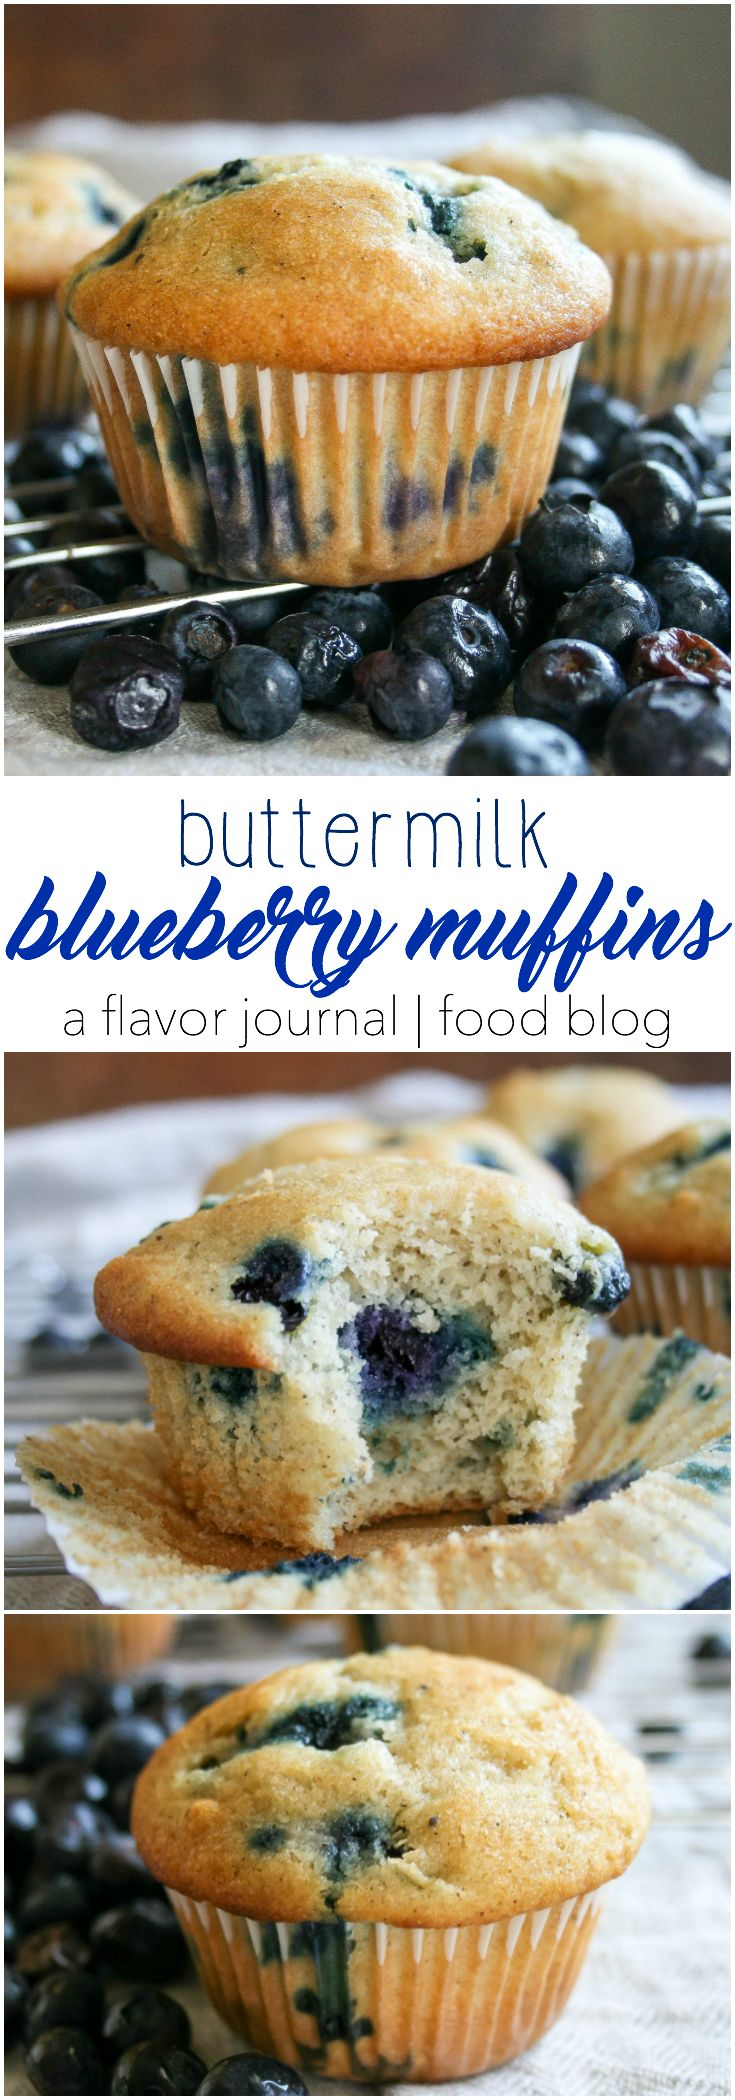 fluffy, warm, delicious blueberry muffins made with buttermilk! these are a classic breakfast or brunch MUST, and they couldn't be easier to make! buttermilk blueberry muffins http://aflavorjournal.com/buttermilk-blueberry-muffins/